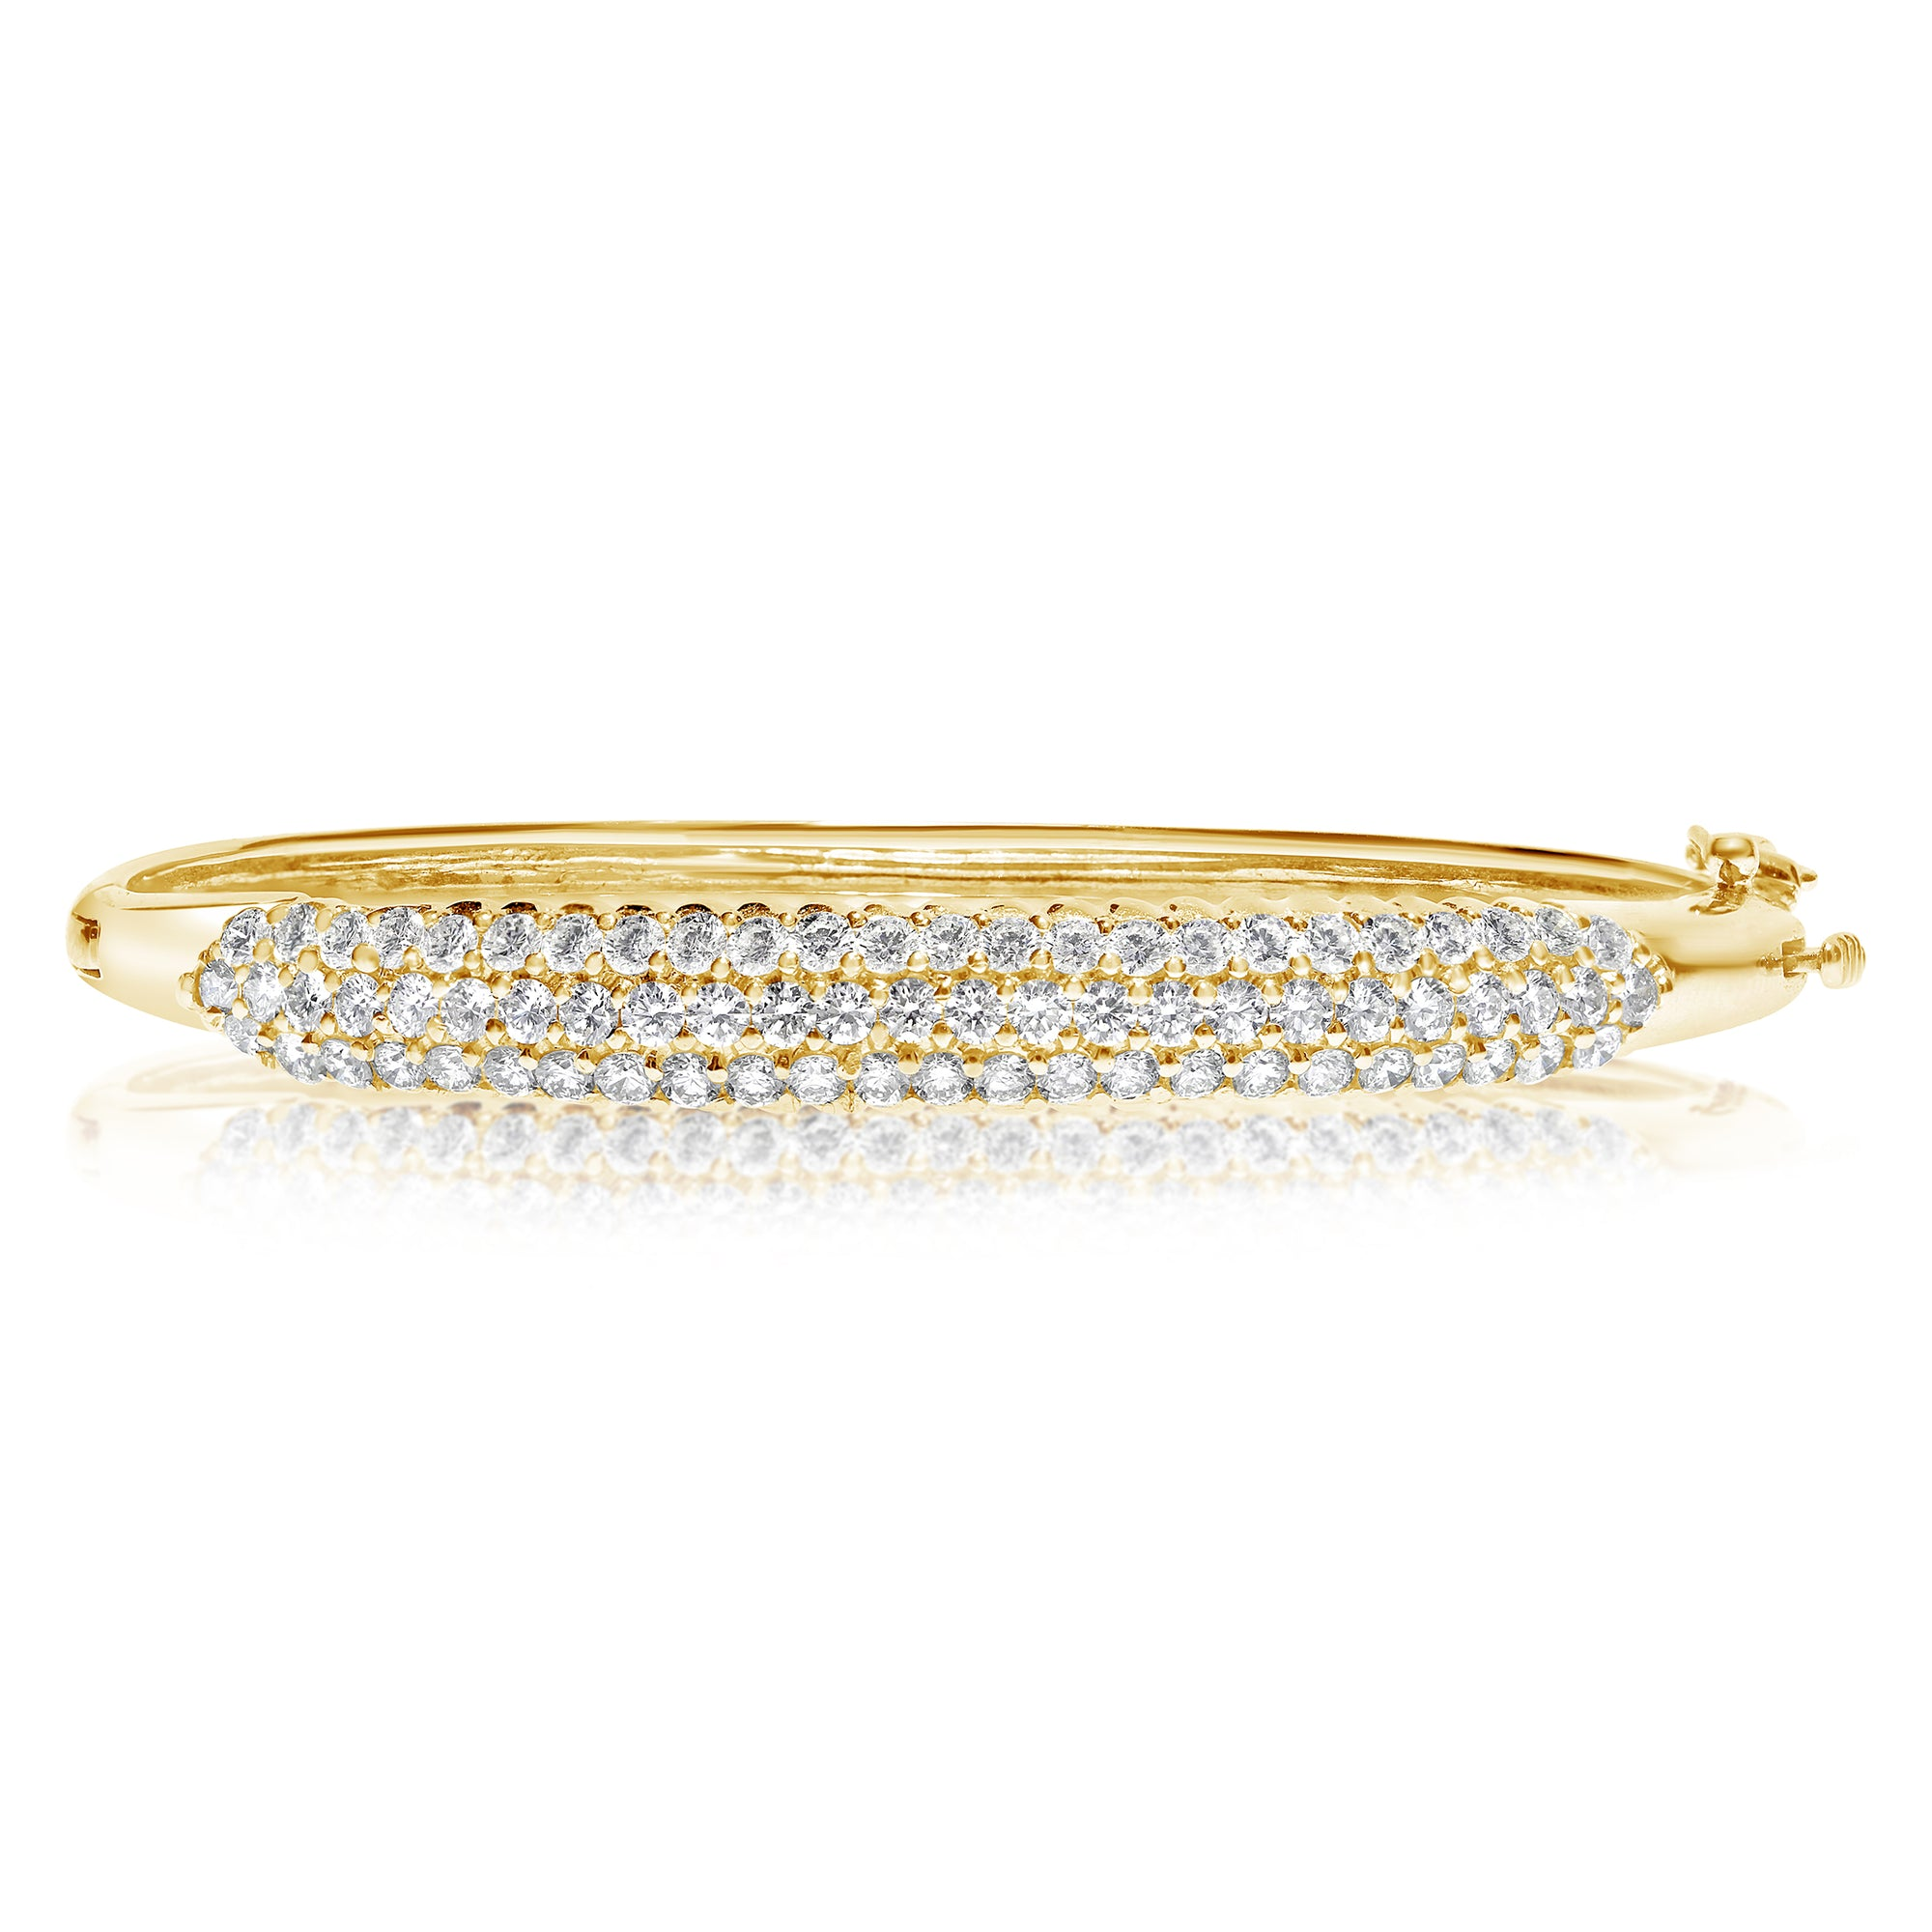 departments pave jewelry skinny rose diamond fine gold joaillerie bangles small bangle bracelet messika